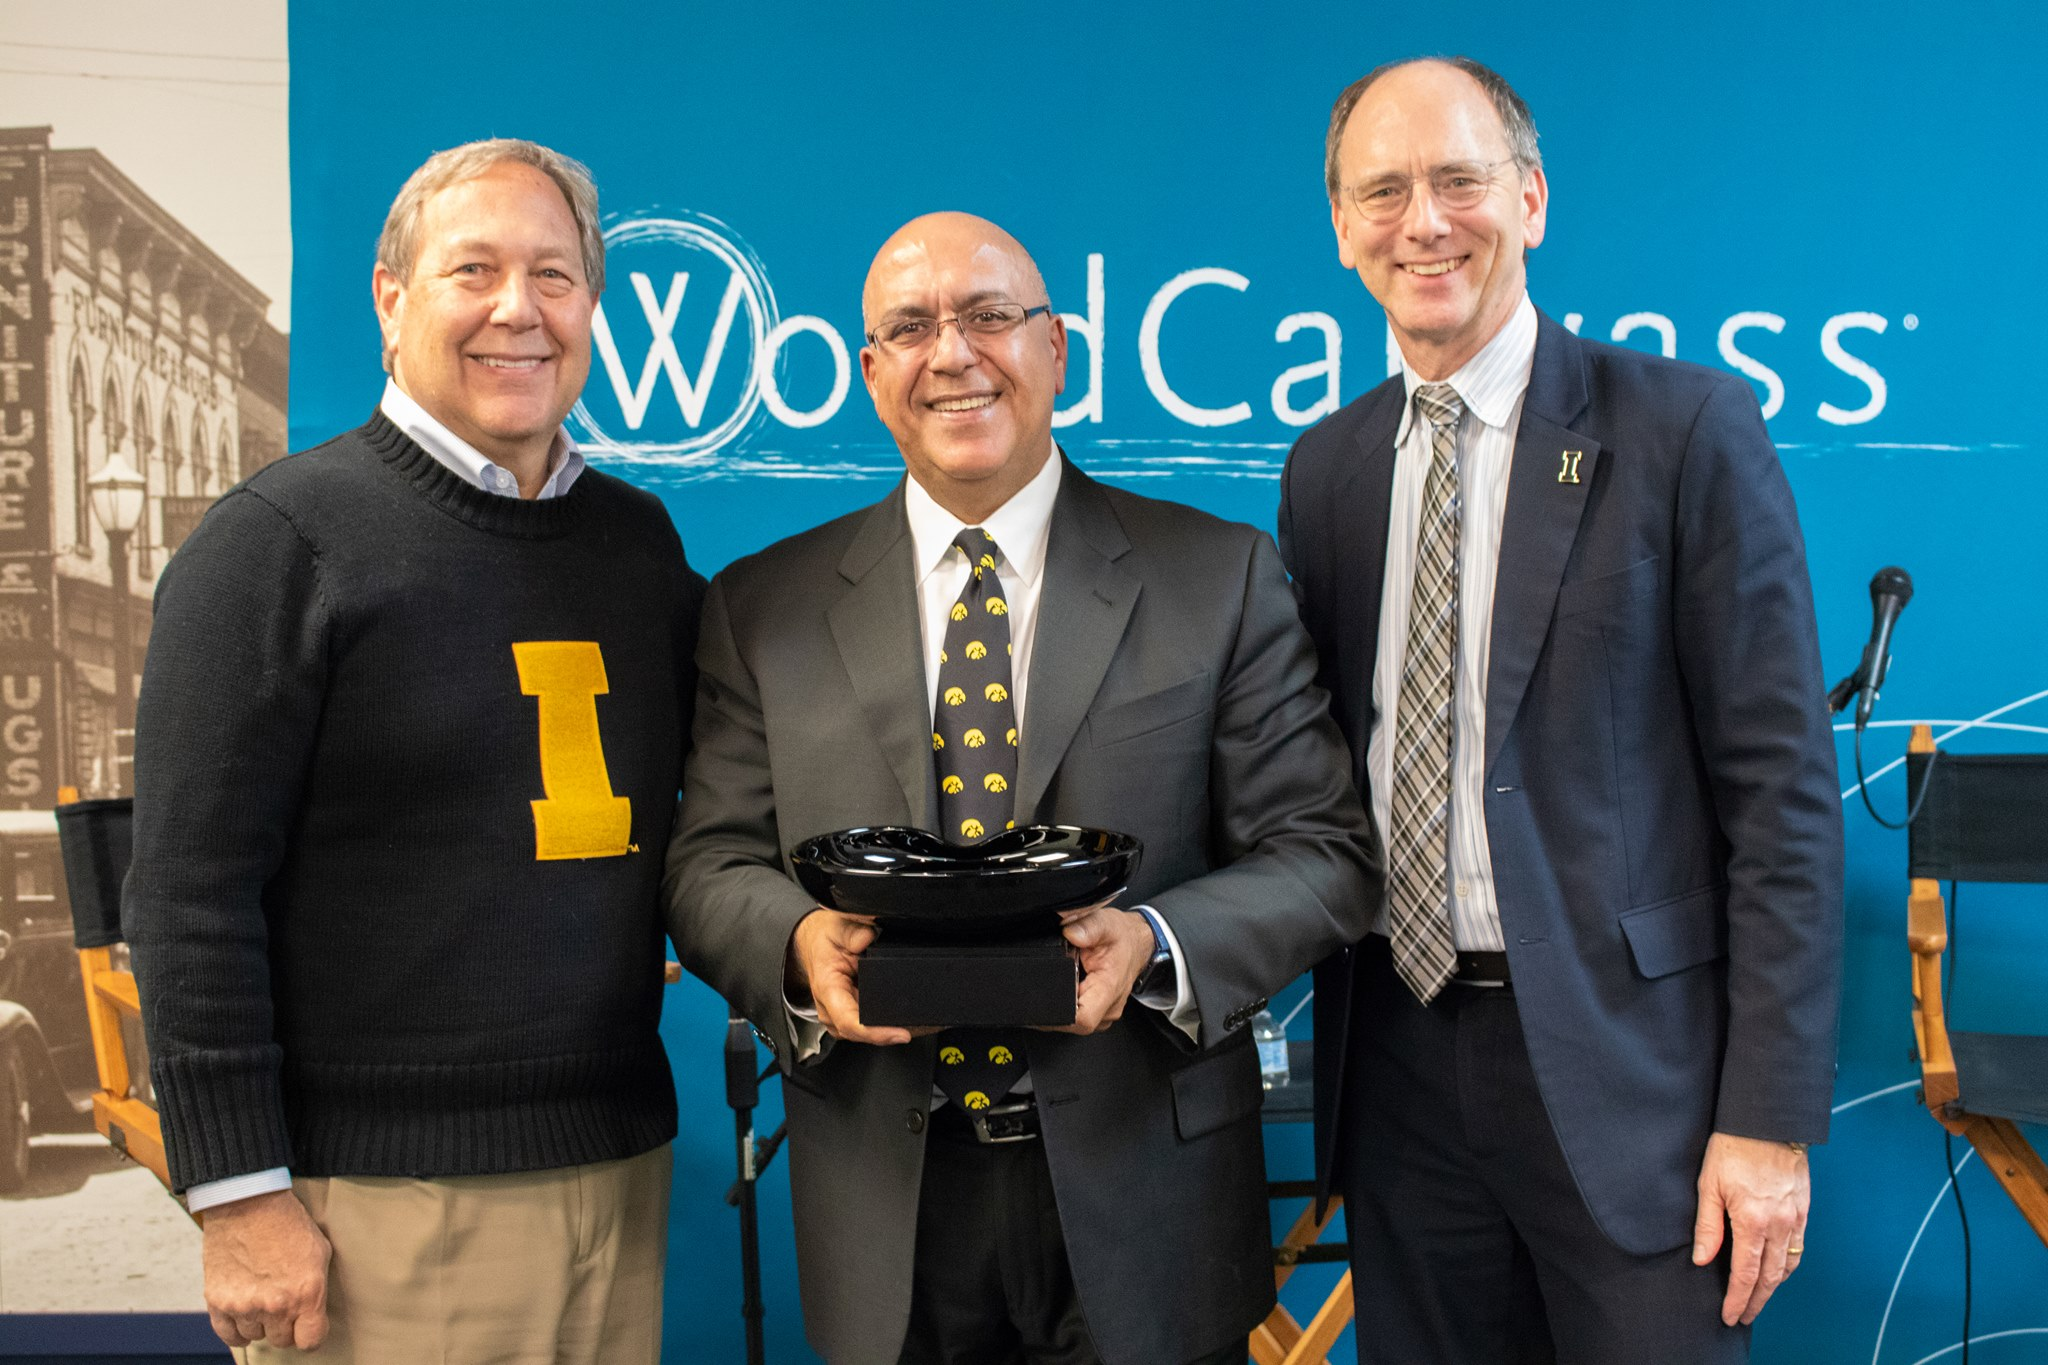 Sehgal Foundation's Rajat Jay Sehgal (center) with the University of Iowa's International Impact Award. Also seen are university President Bruce Harreld (left) and Downing A. Thomas, associate provost and dean of International Programs at the university.